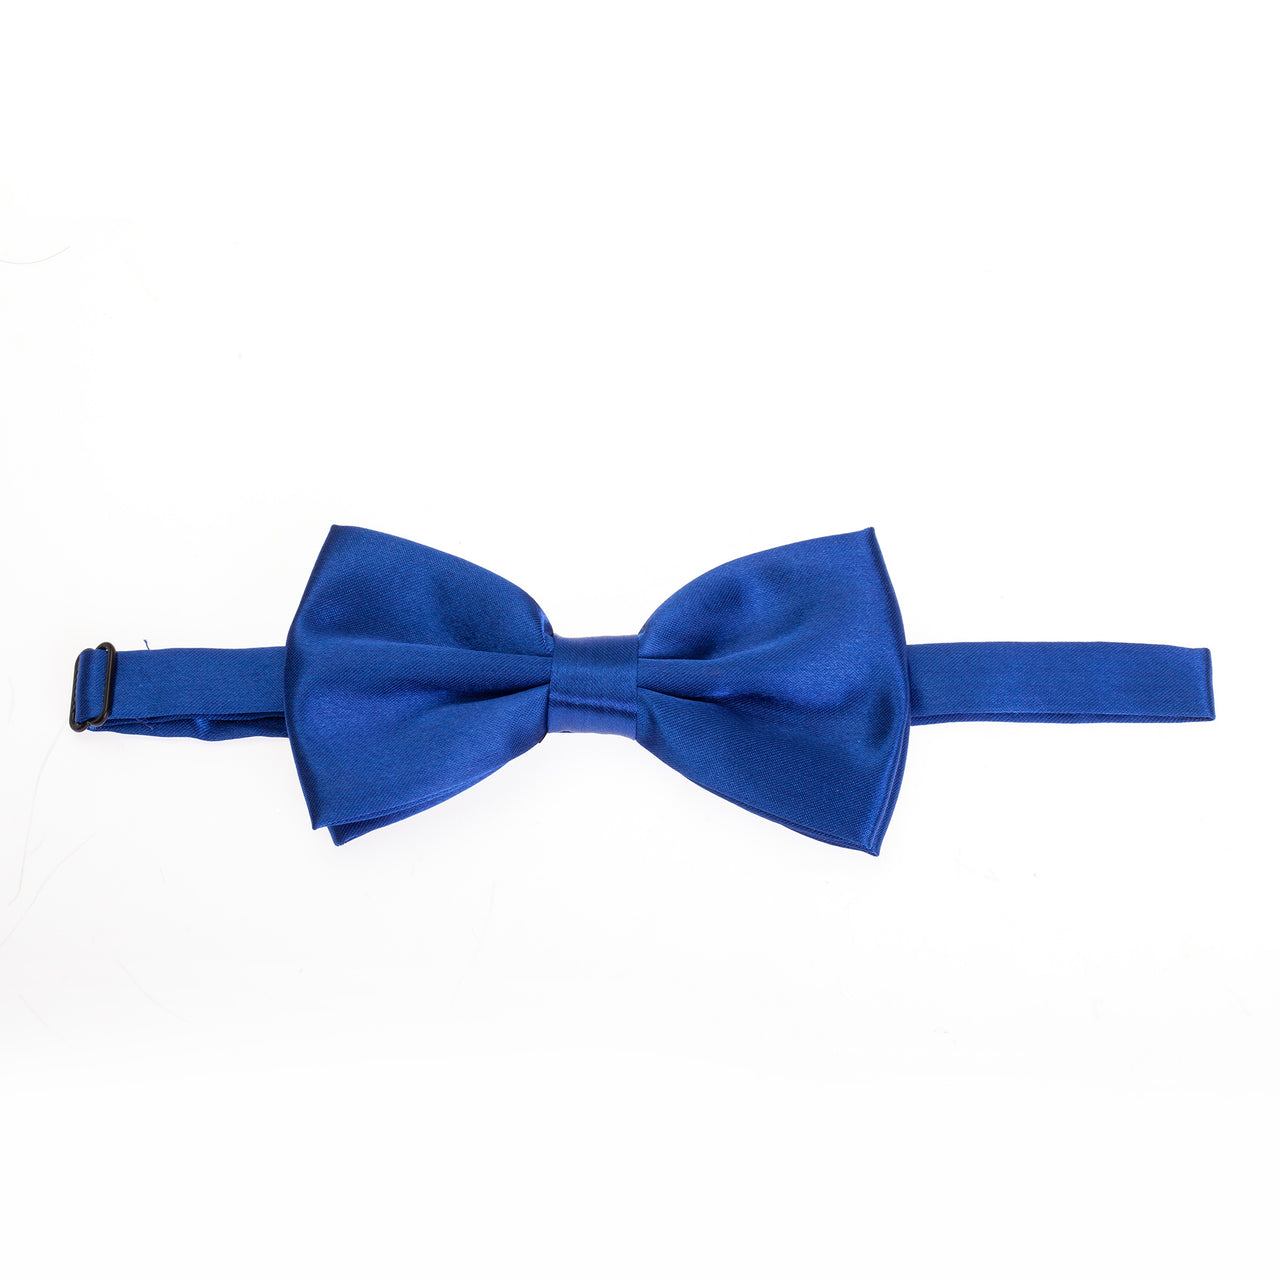 Pre-tied Plain Satin Bow Tie - Royal Blue